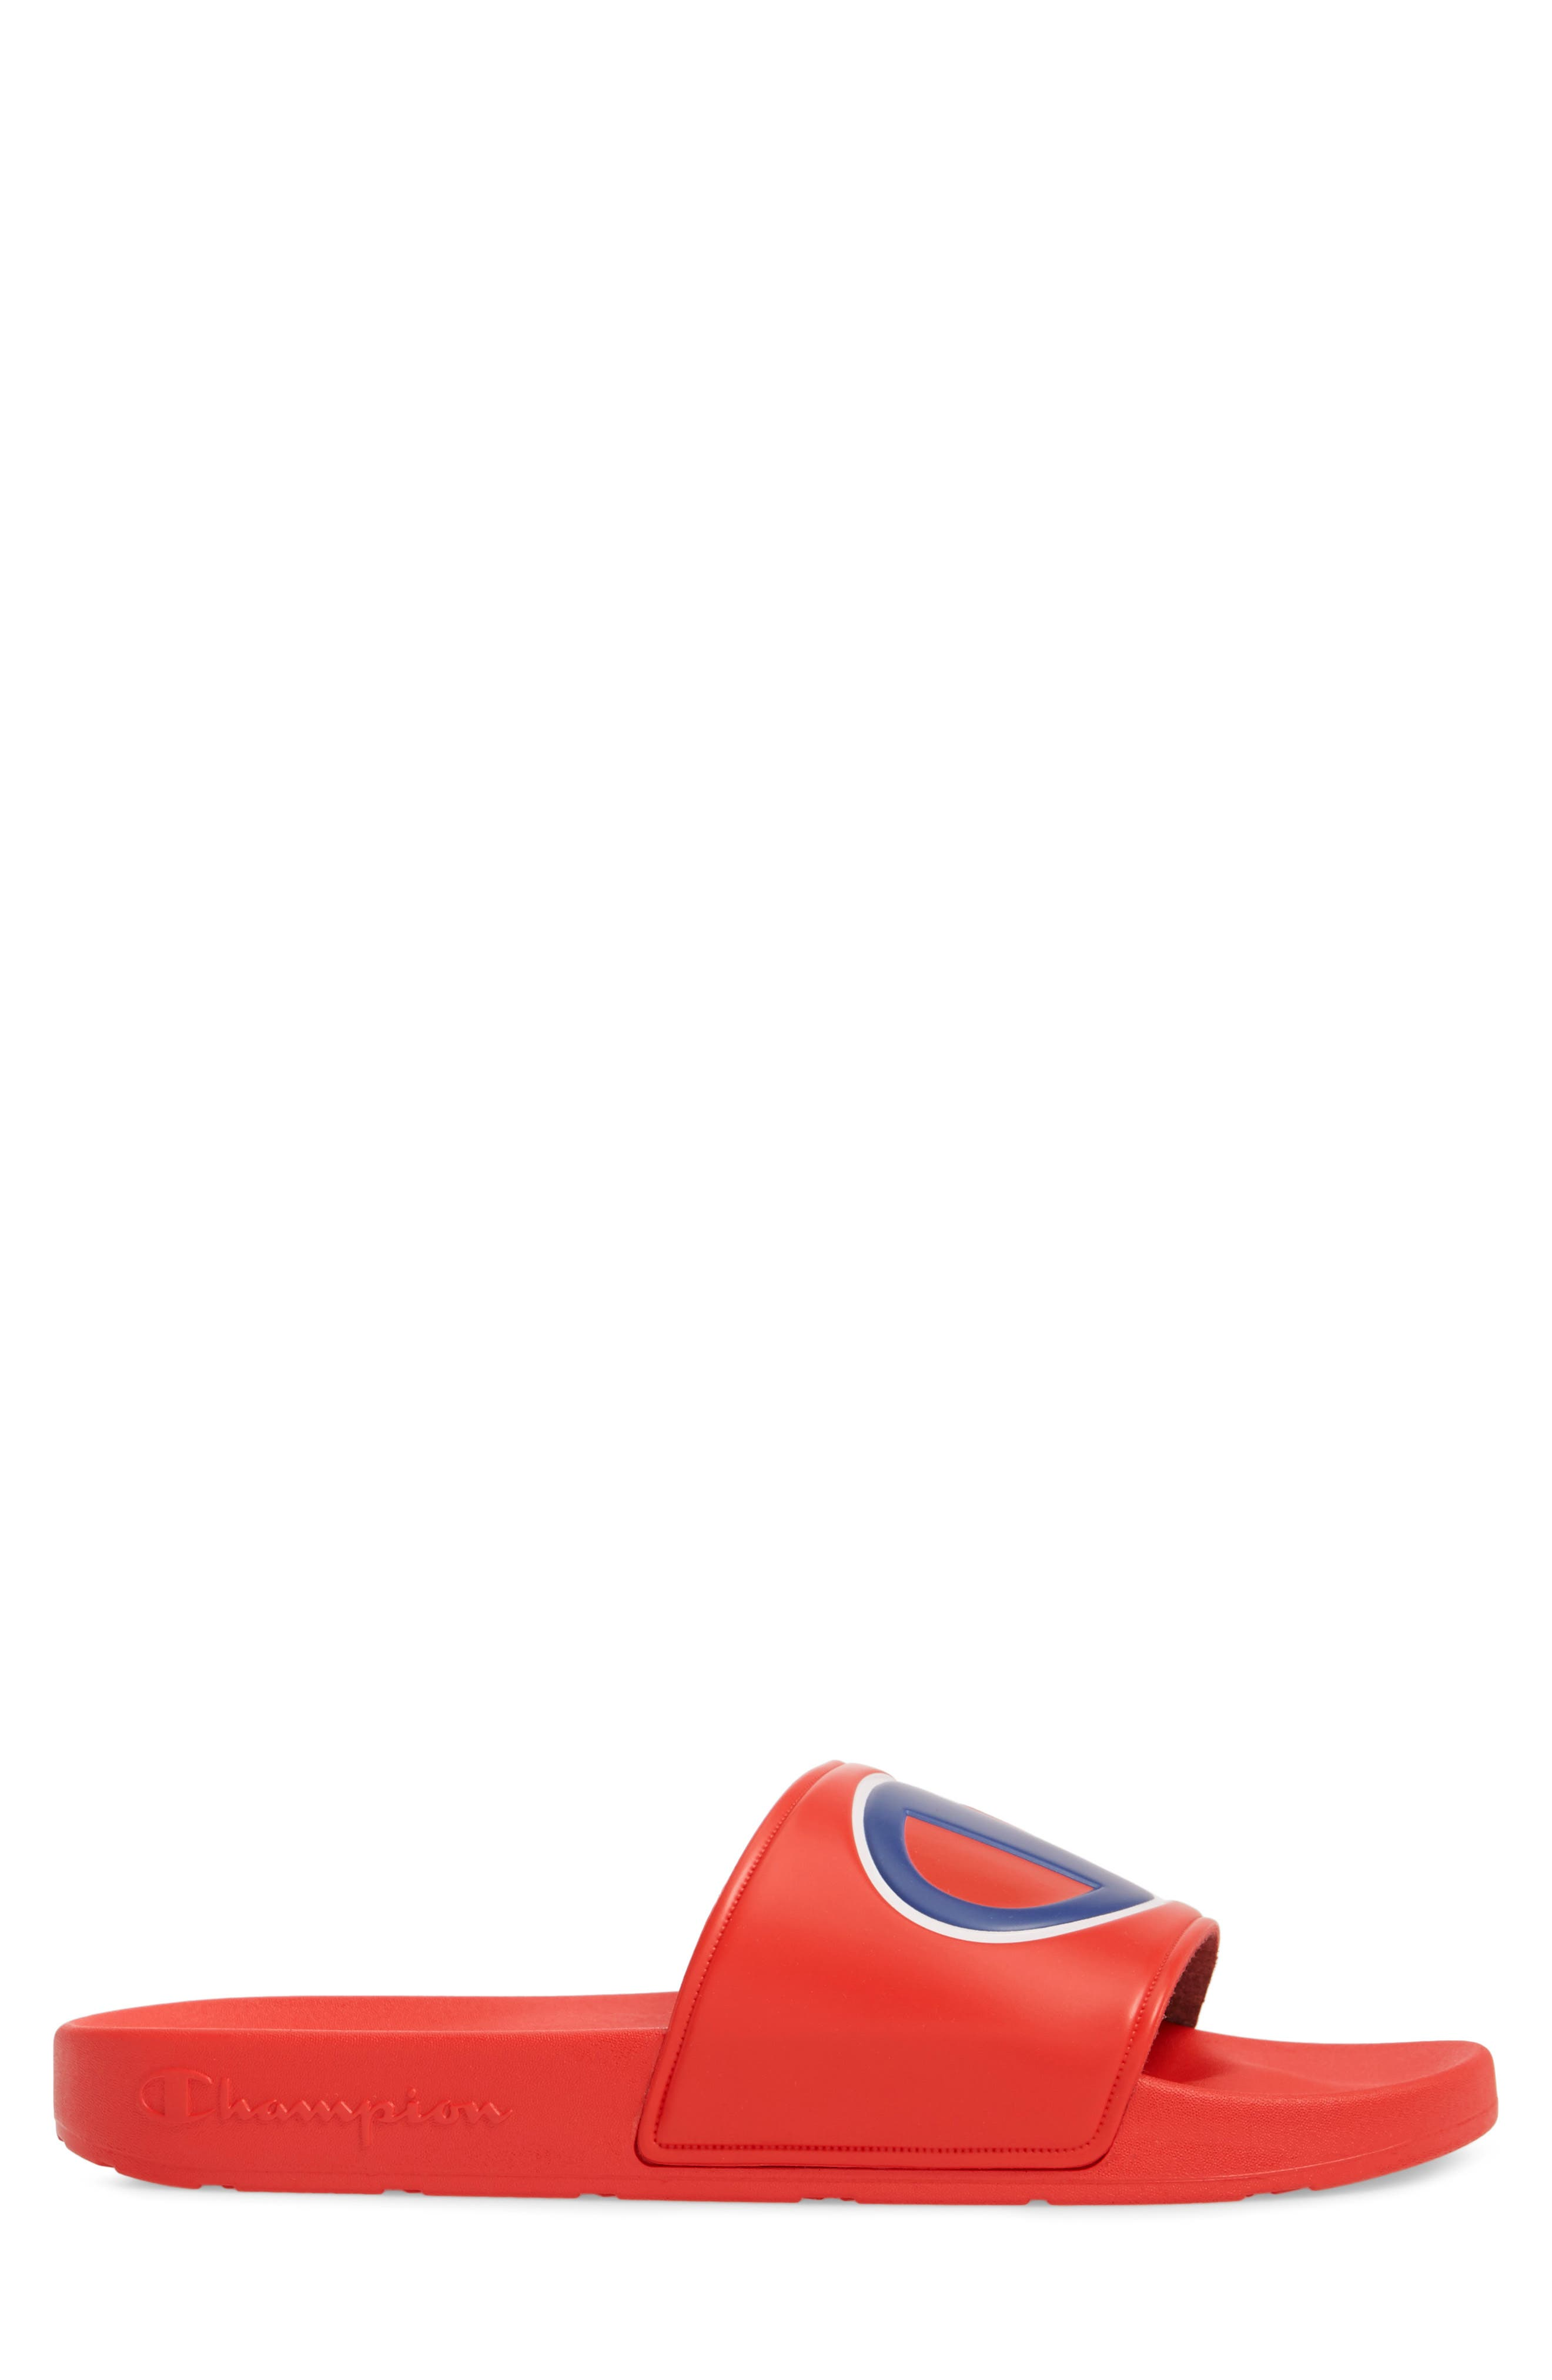 IPO Sports Slide,                             Alternate thumbnail 3, color,                             RED